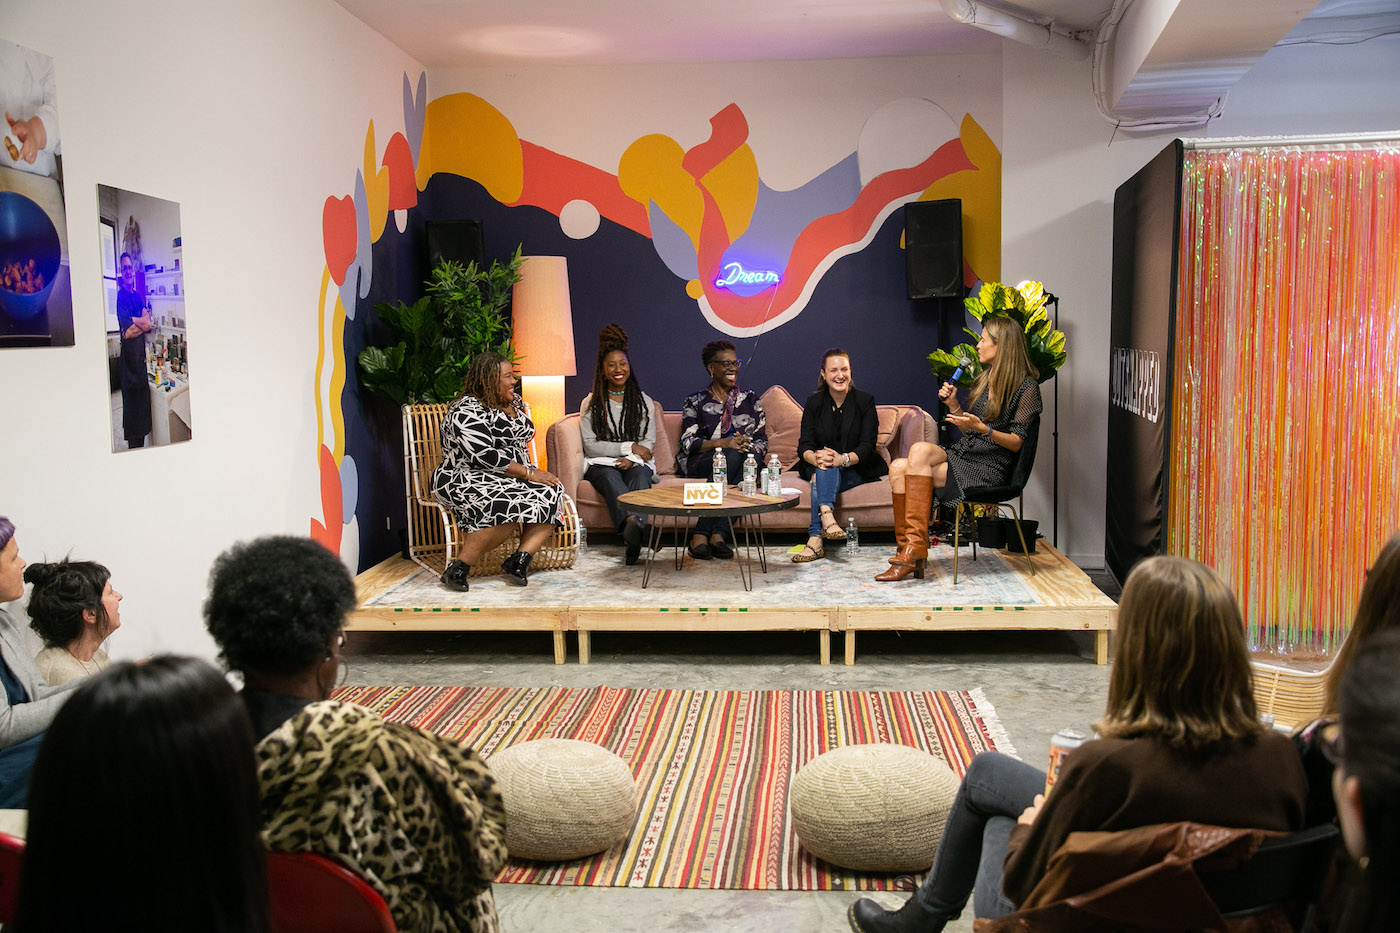 The Sustainable Fashion & Equity Panel